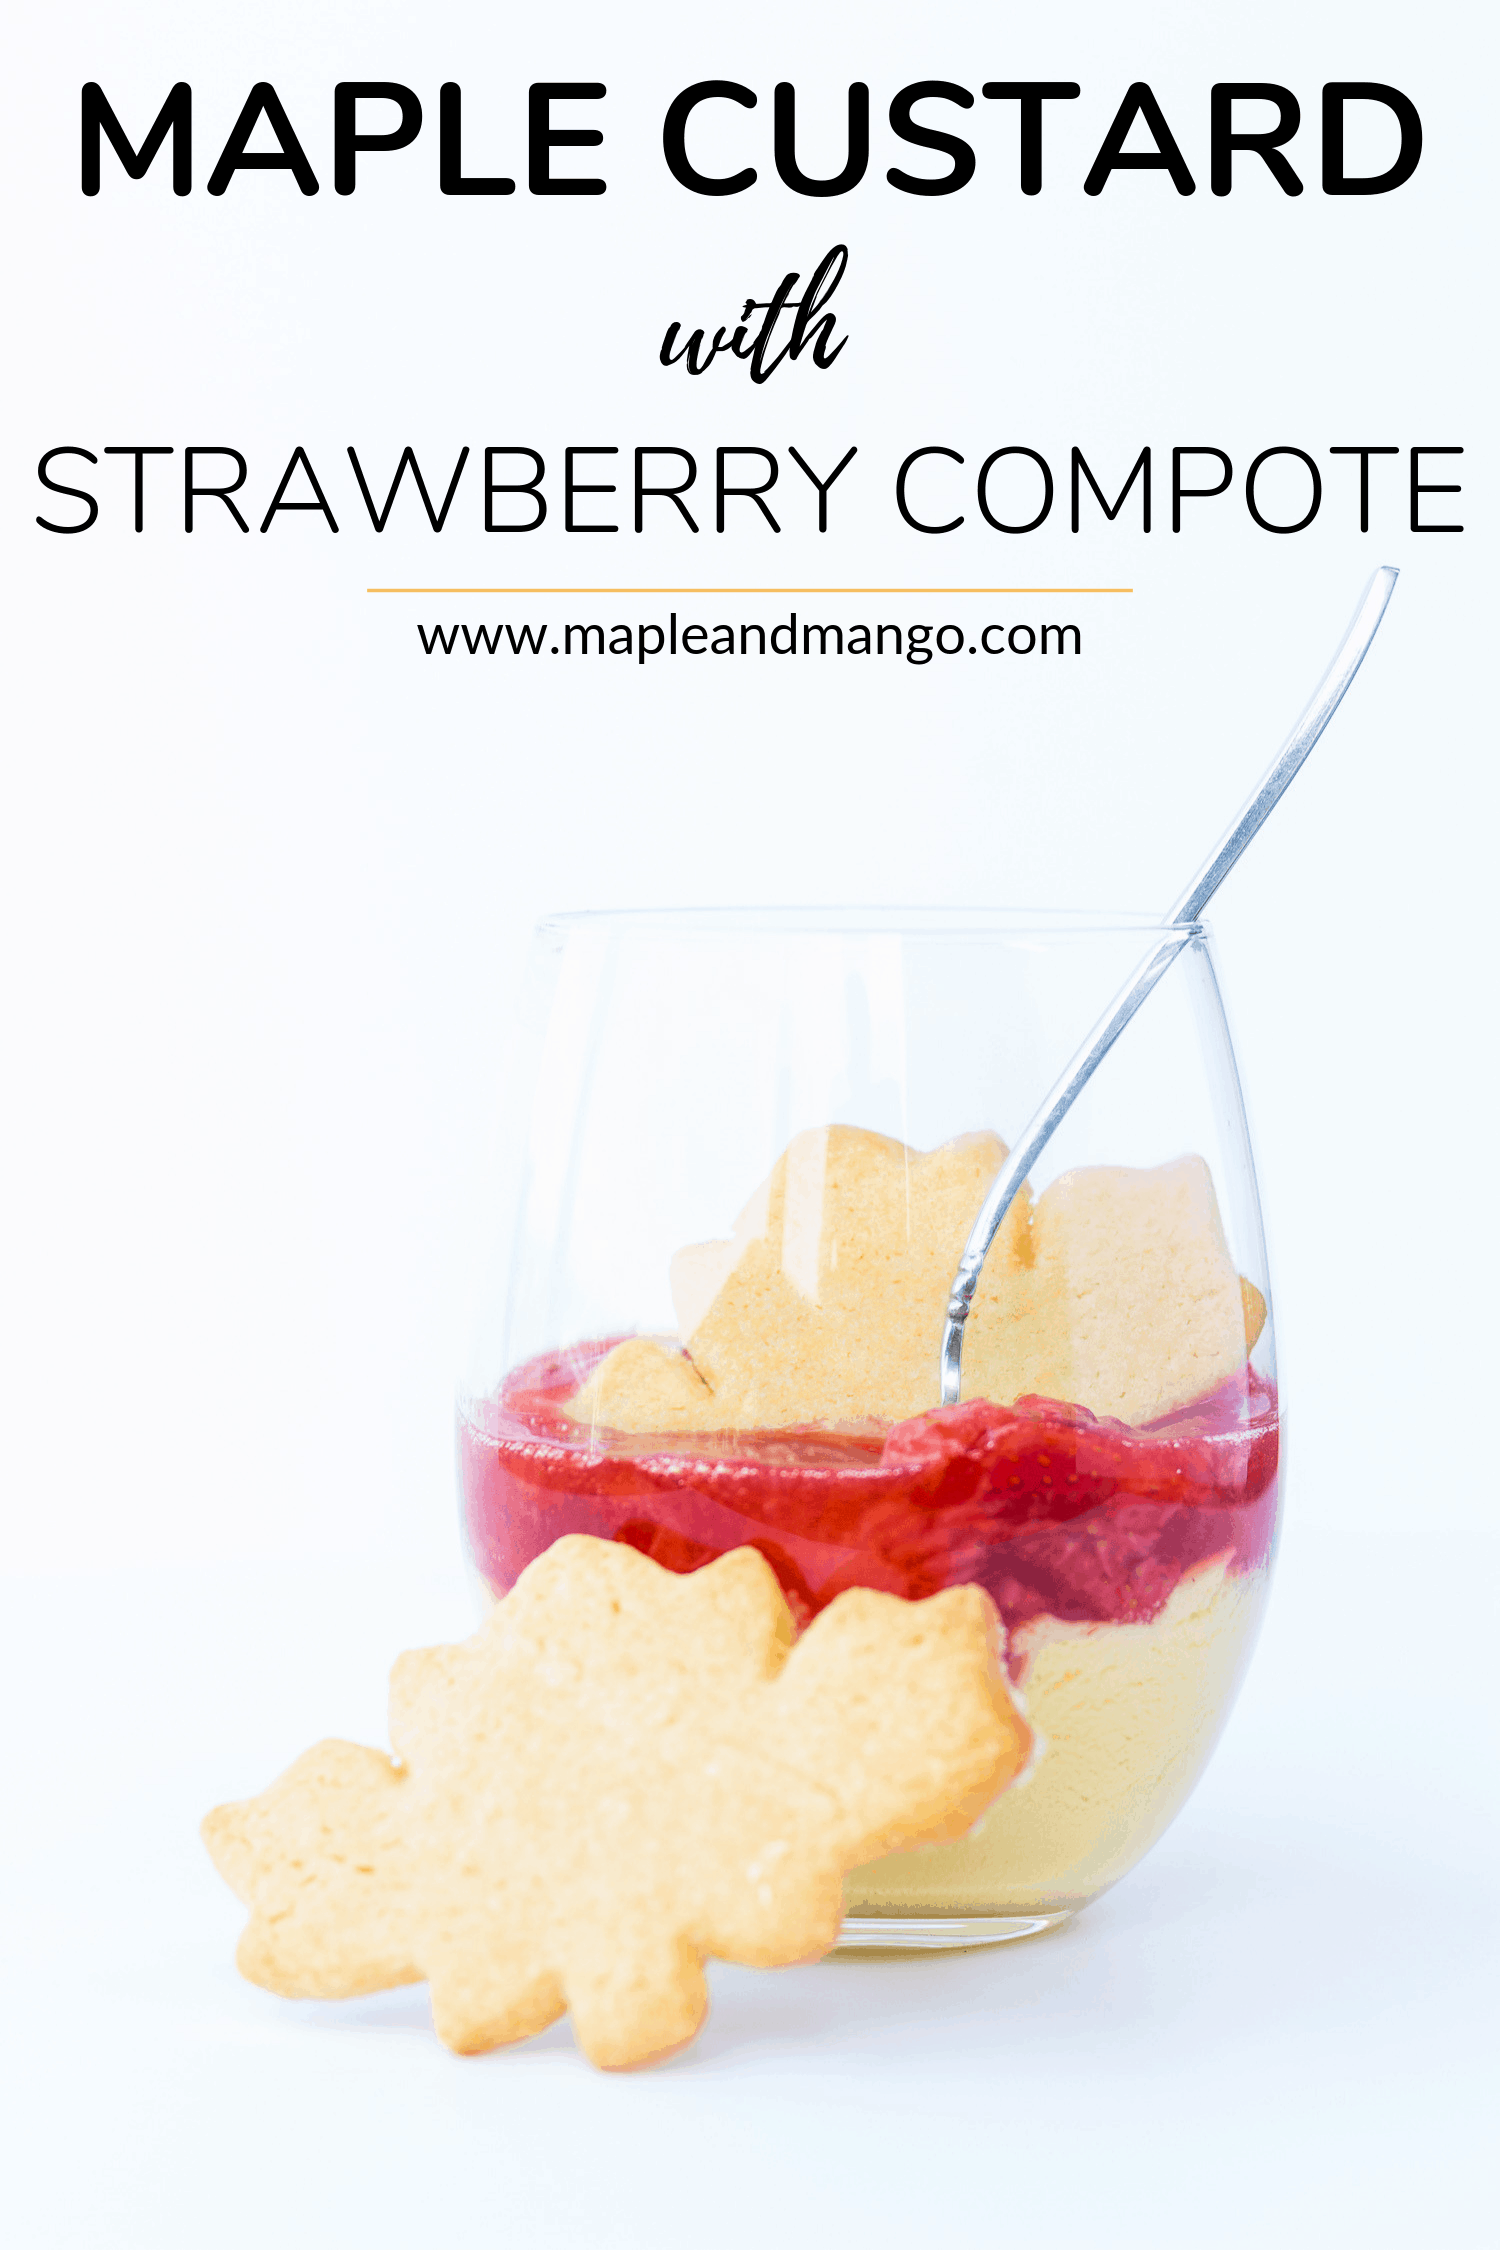 Pinterest image for Maple Custard with Strawberry Compote